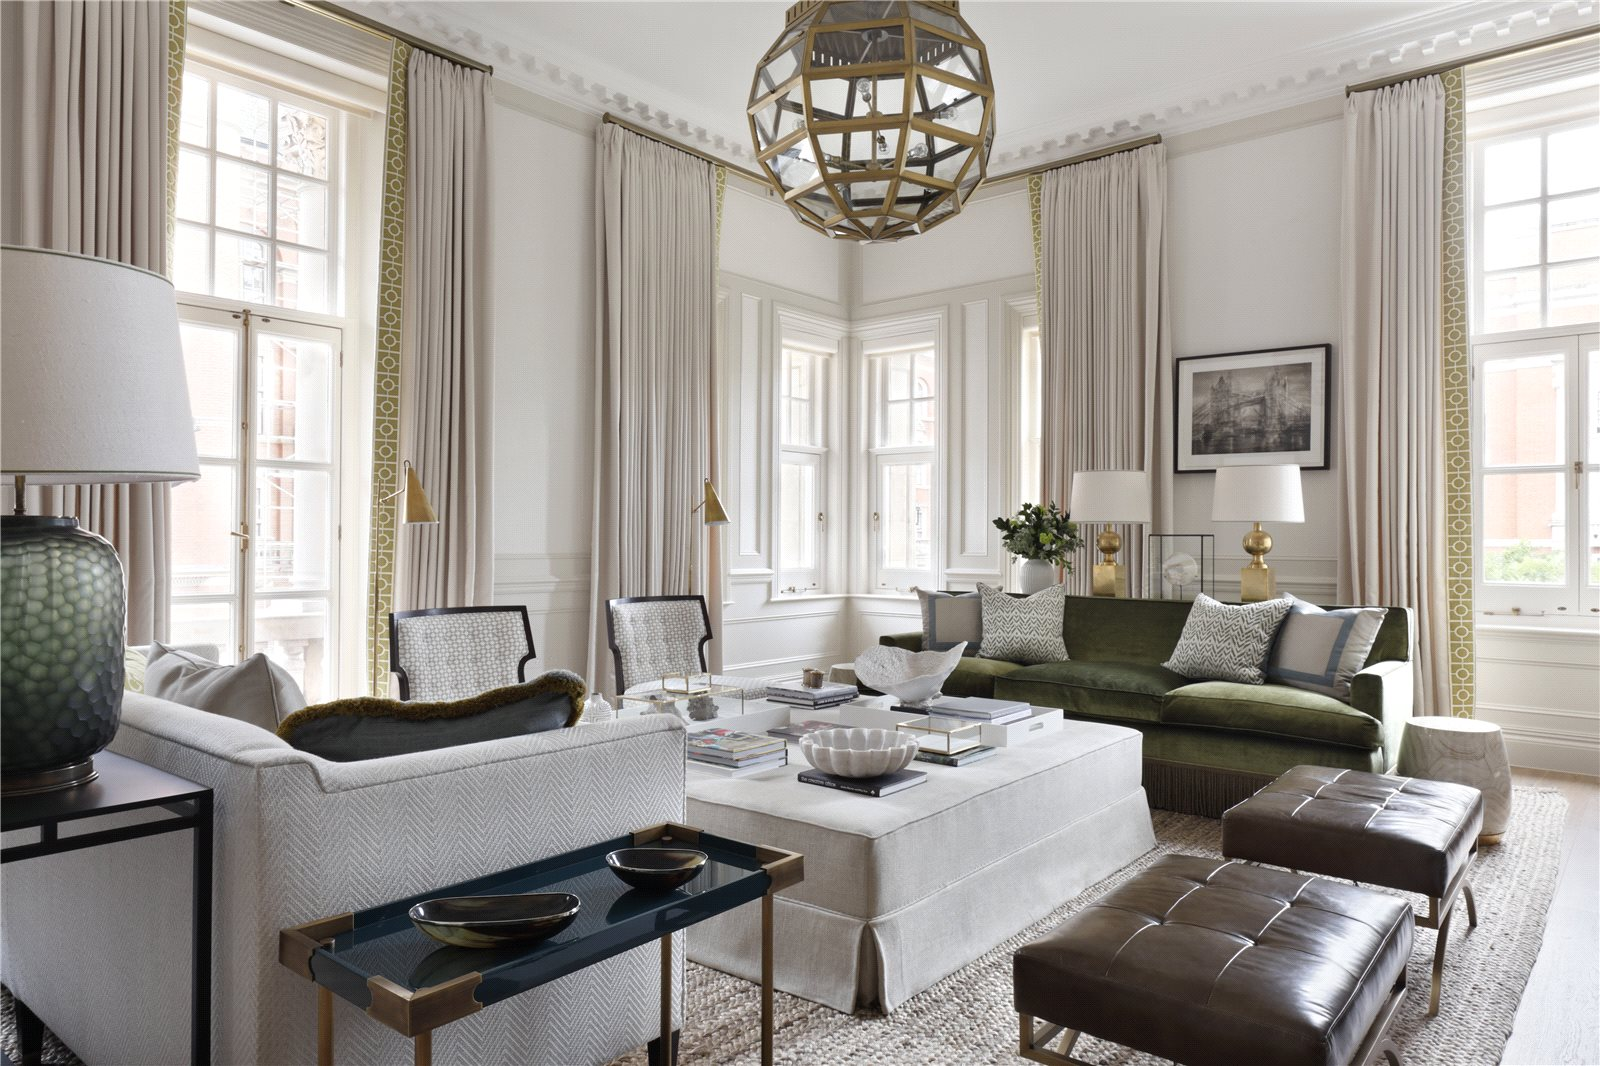 Apartments / Residences for Sale at Albert Court, Prince Consort Road, London, SW7 London, England